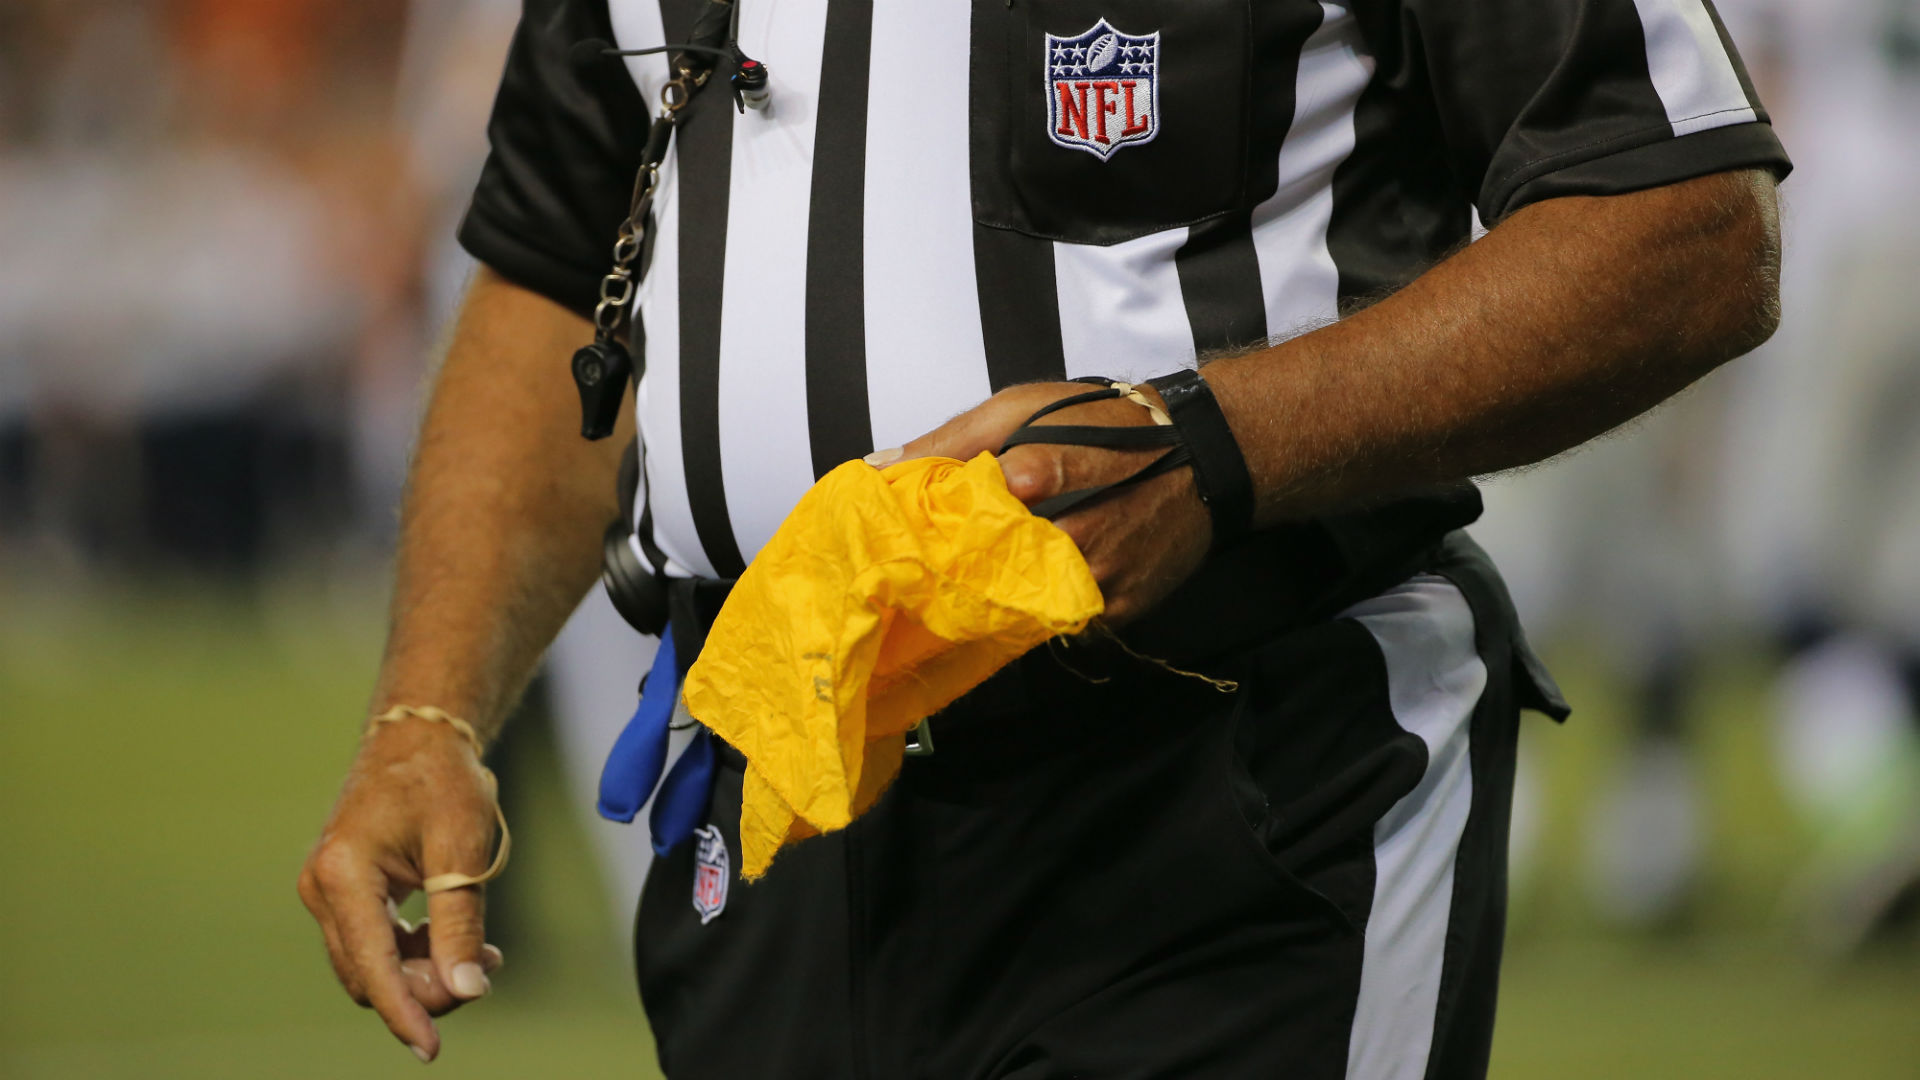 nfl-referee-092915-usnews-getty-ftr